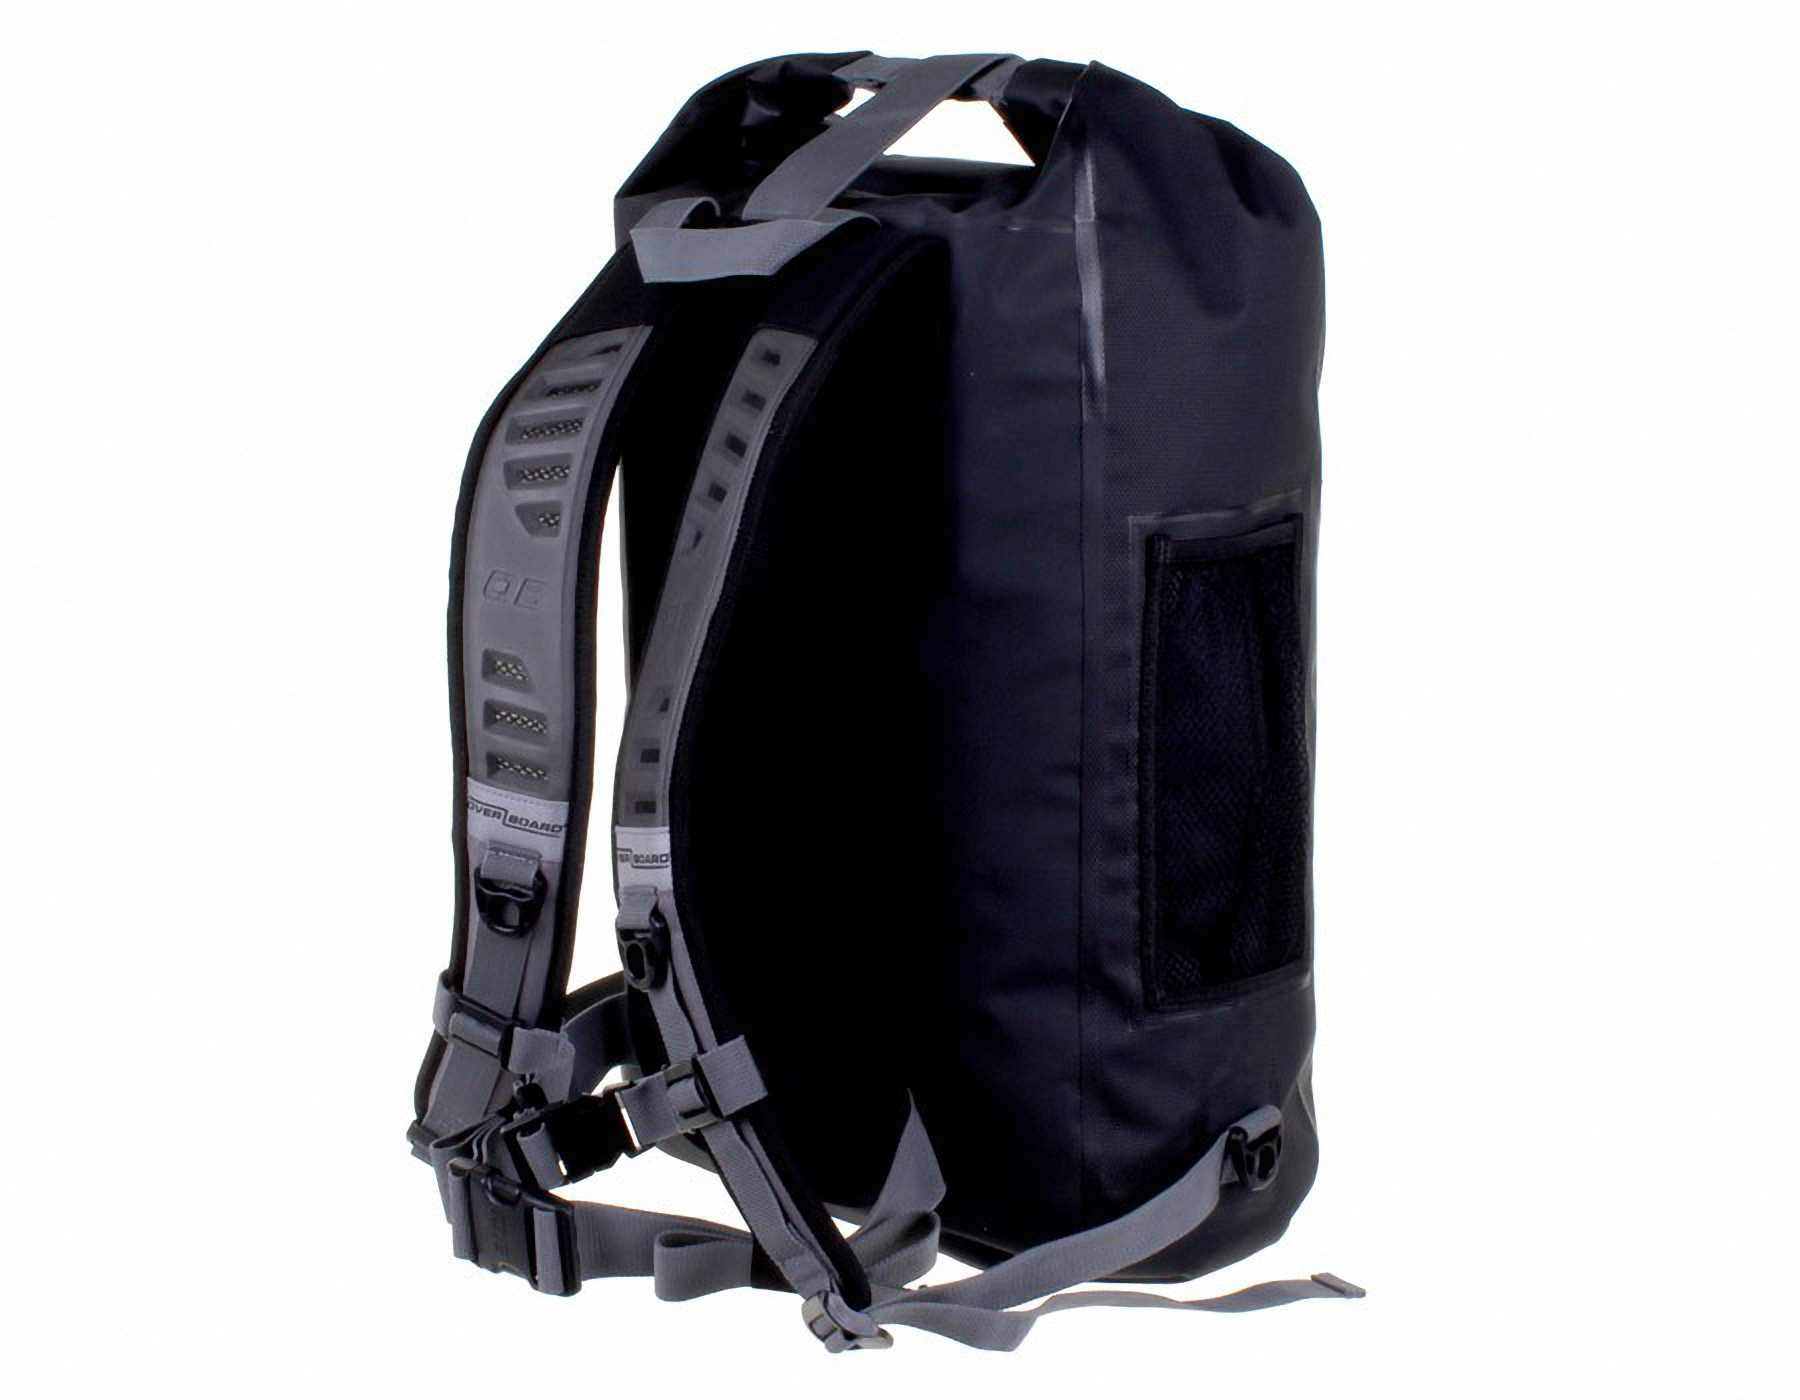 Водонепроницаемый рюкзак OverBoard OB1146BLK - Pro-Sports Waterproof Backpack - 30 литров. Фото 4